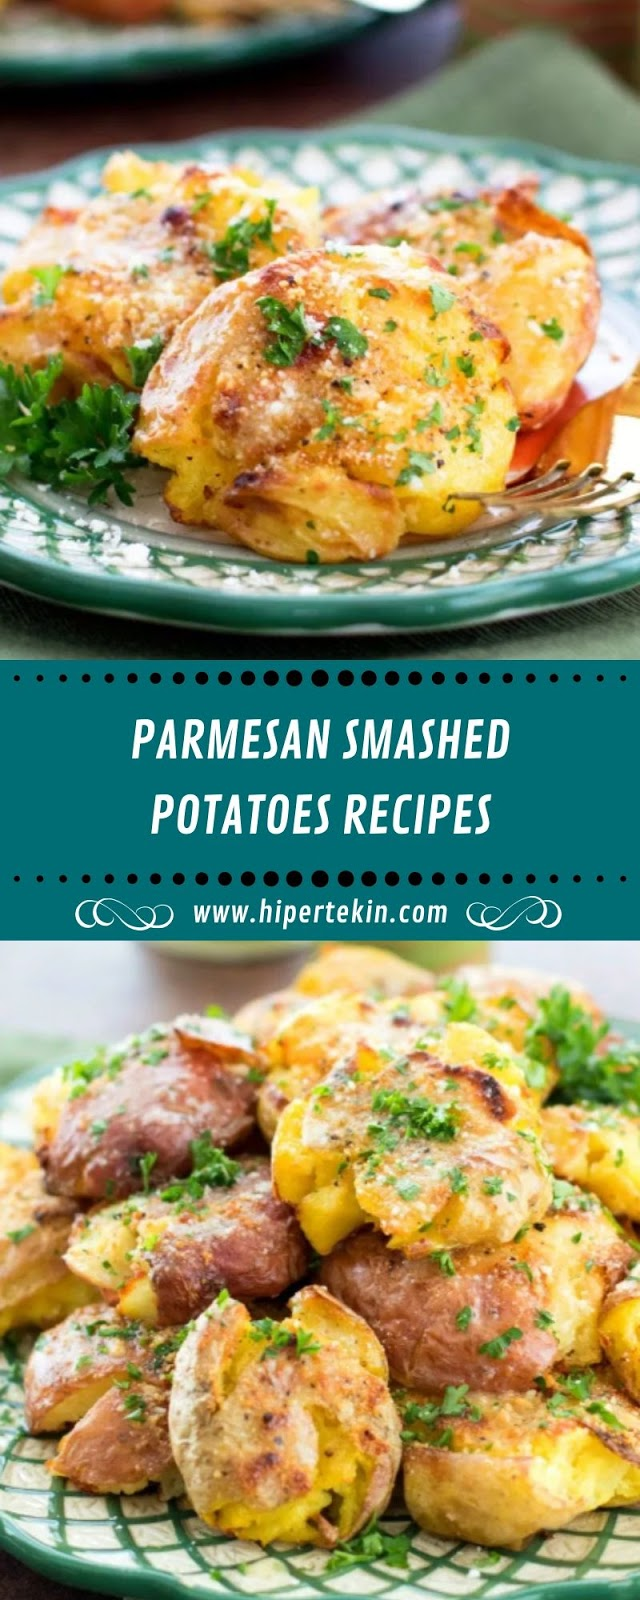 PARMESAN SMASHED POTATOES RECIPES